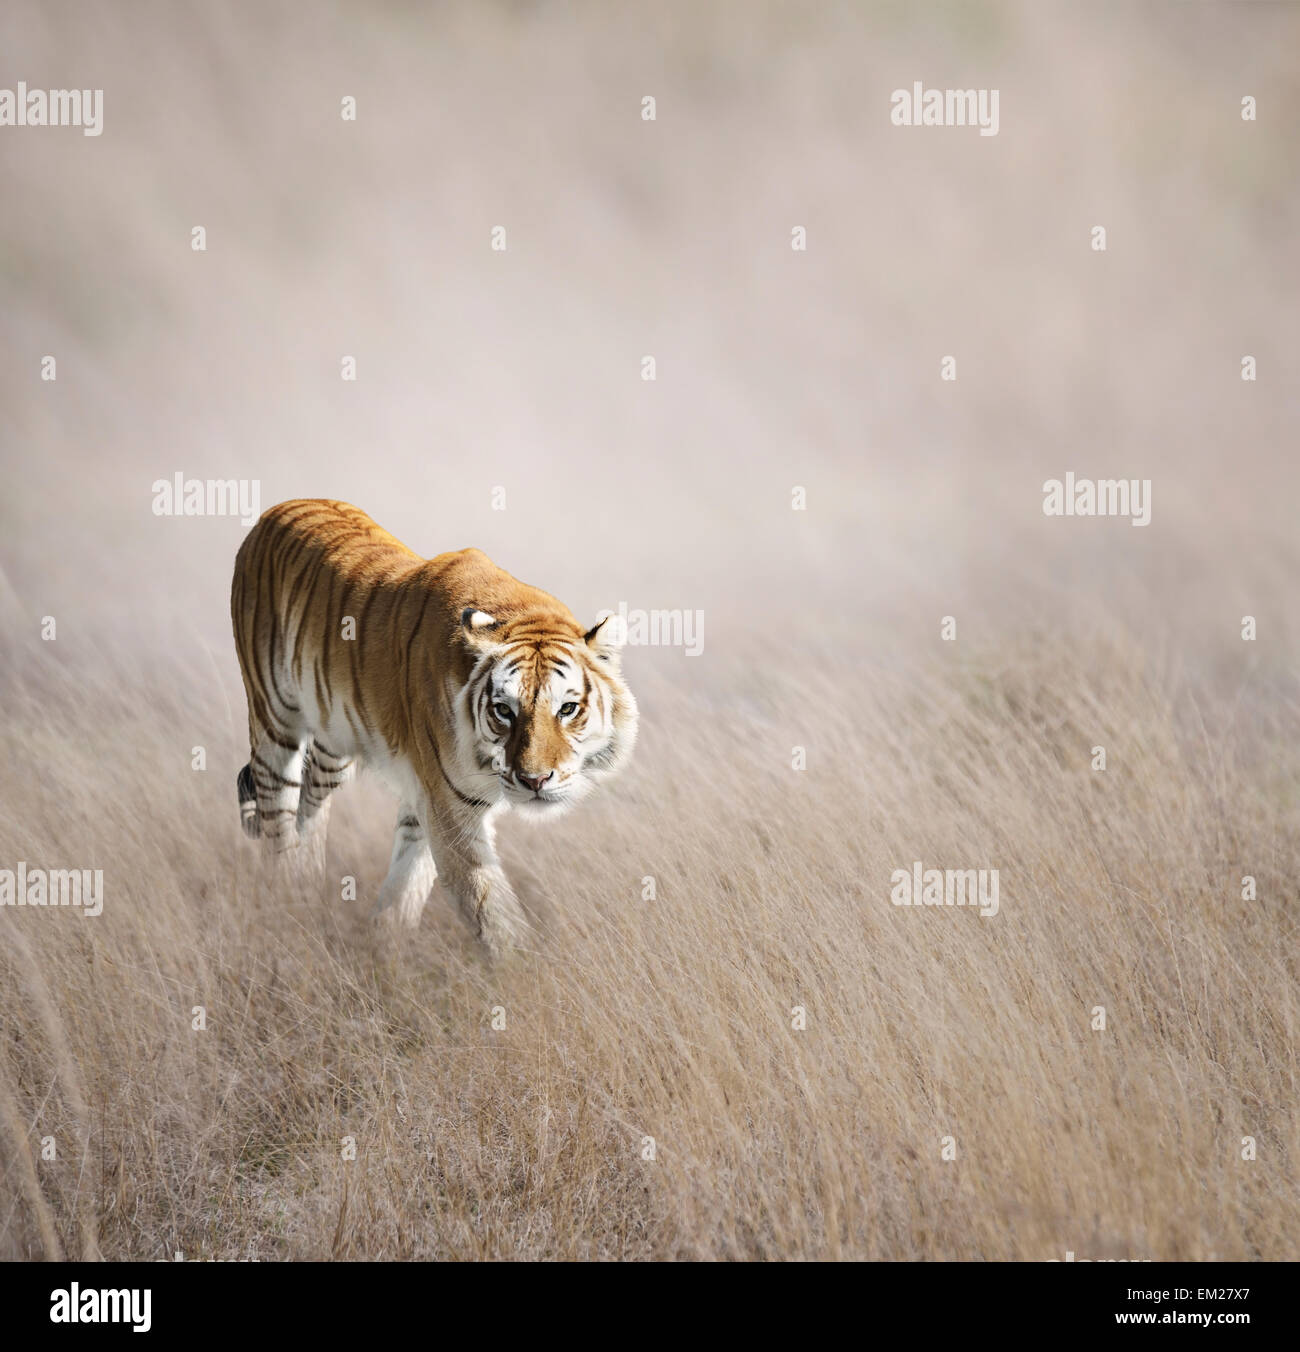 Tiger Walking In The Grass - Stock Image